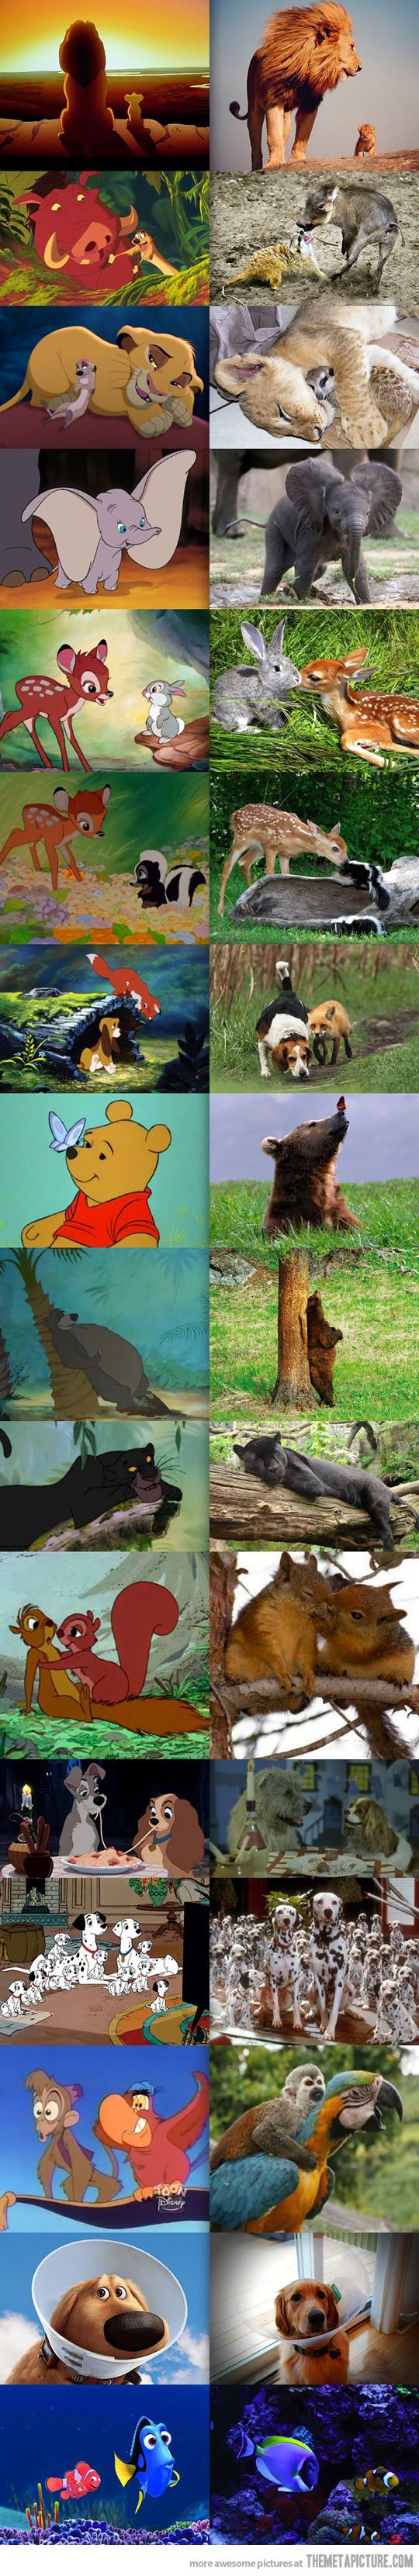 Disney animals in real life!